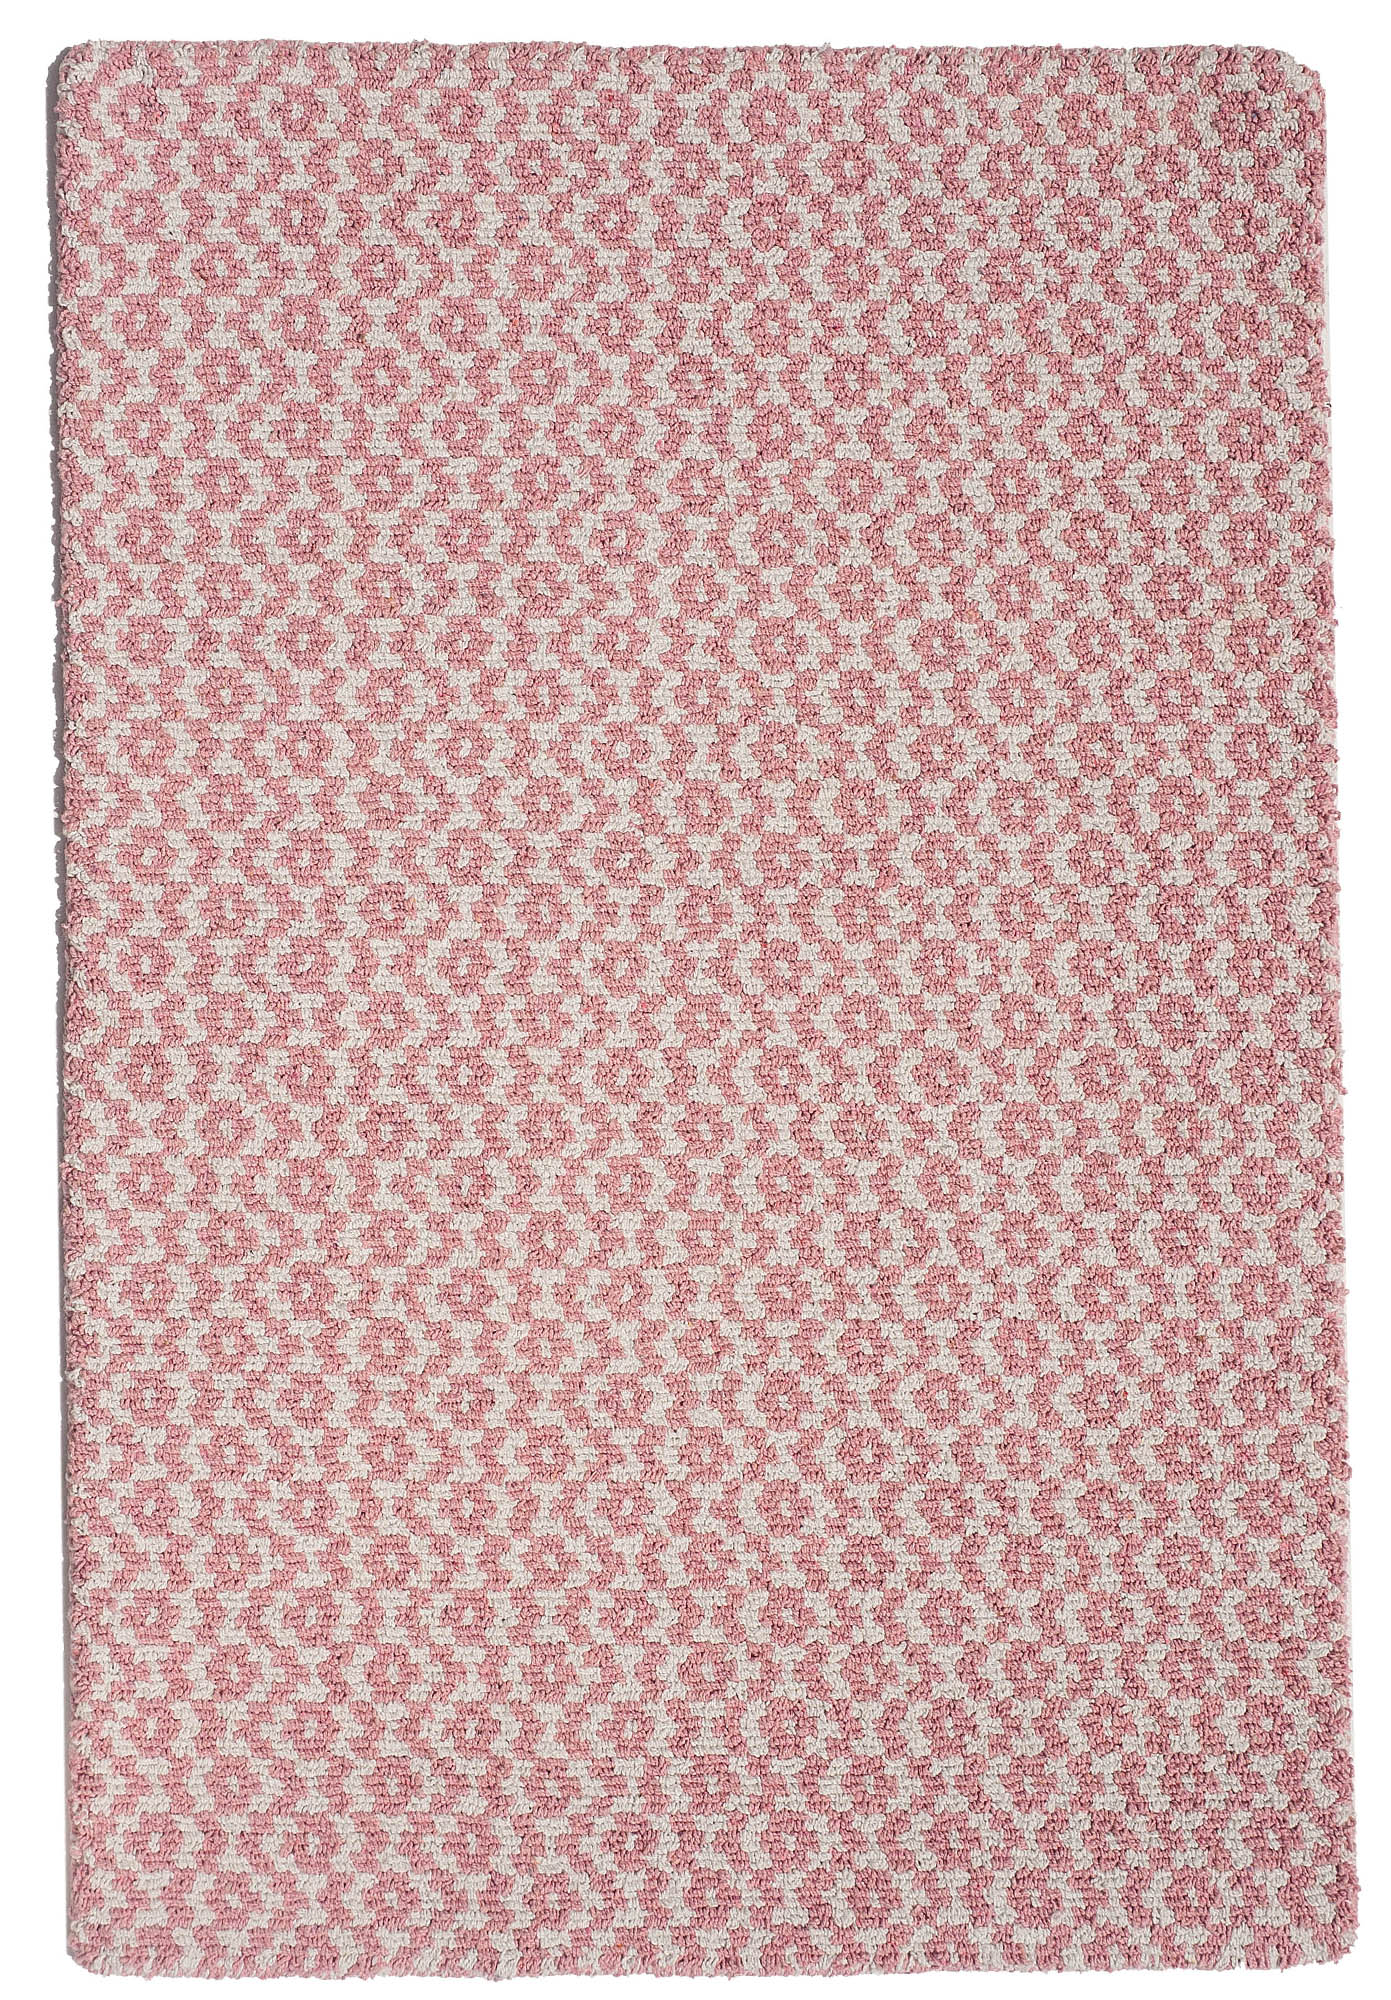 Toulouse Pink White Eco Cotton Loom Hooked Rug Hook Amp Loom